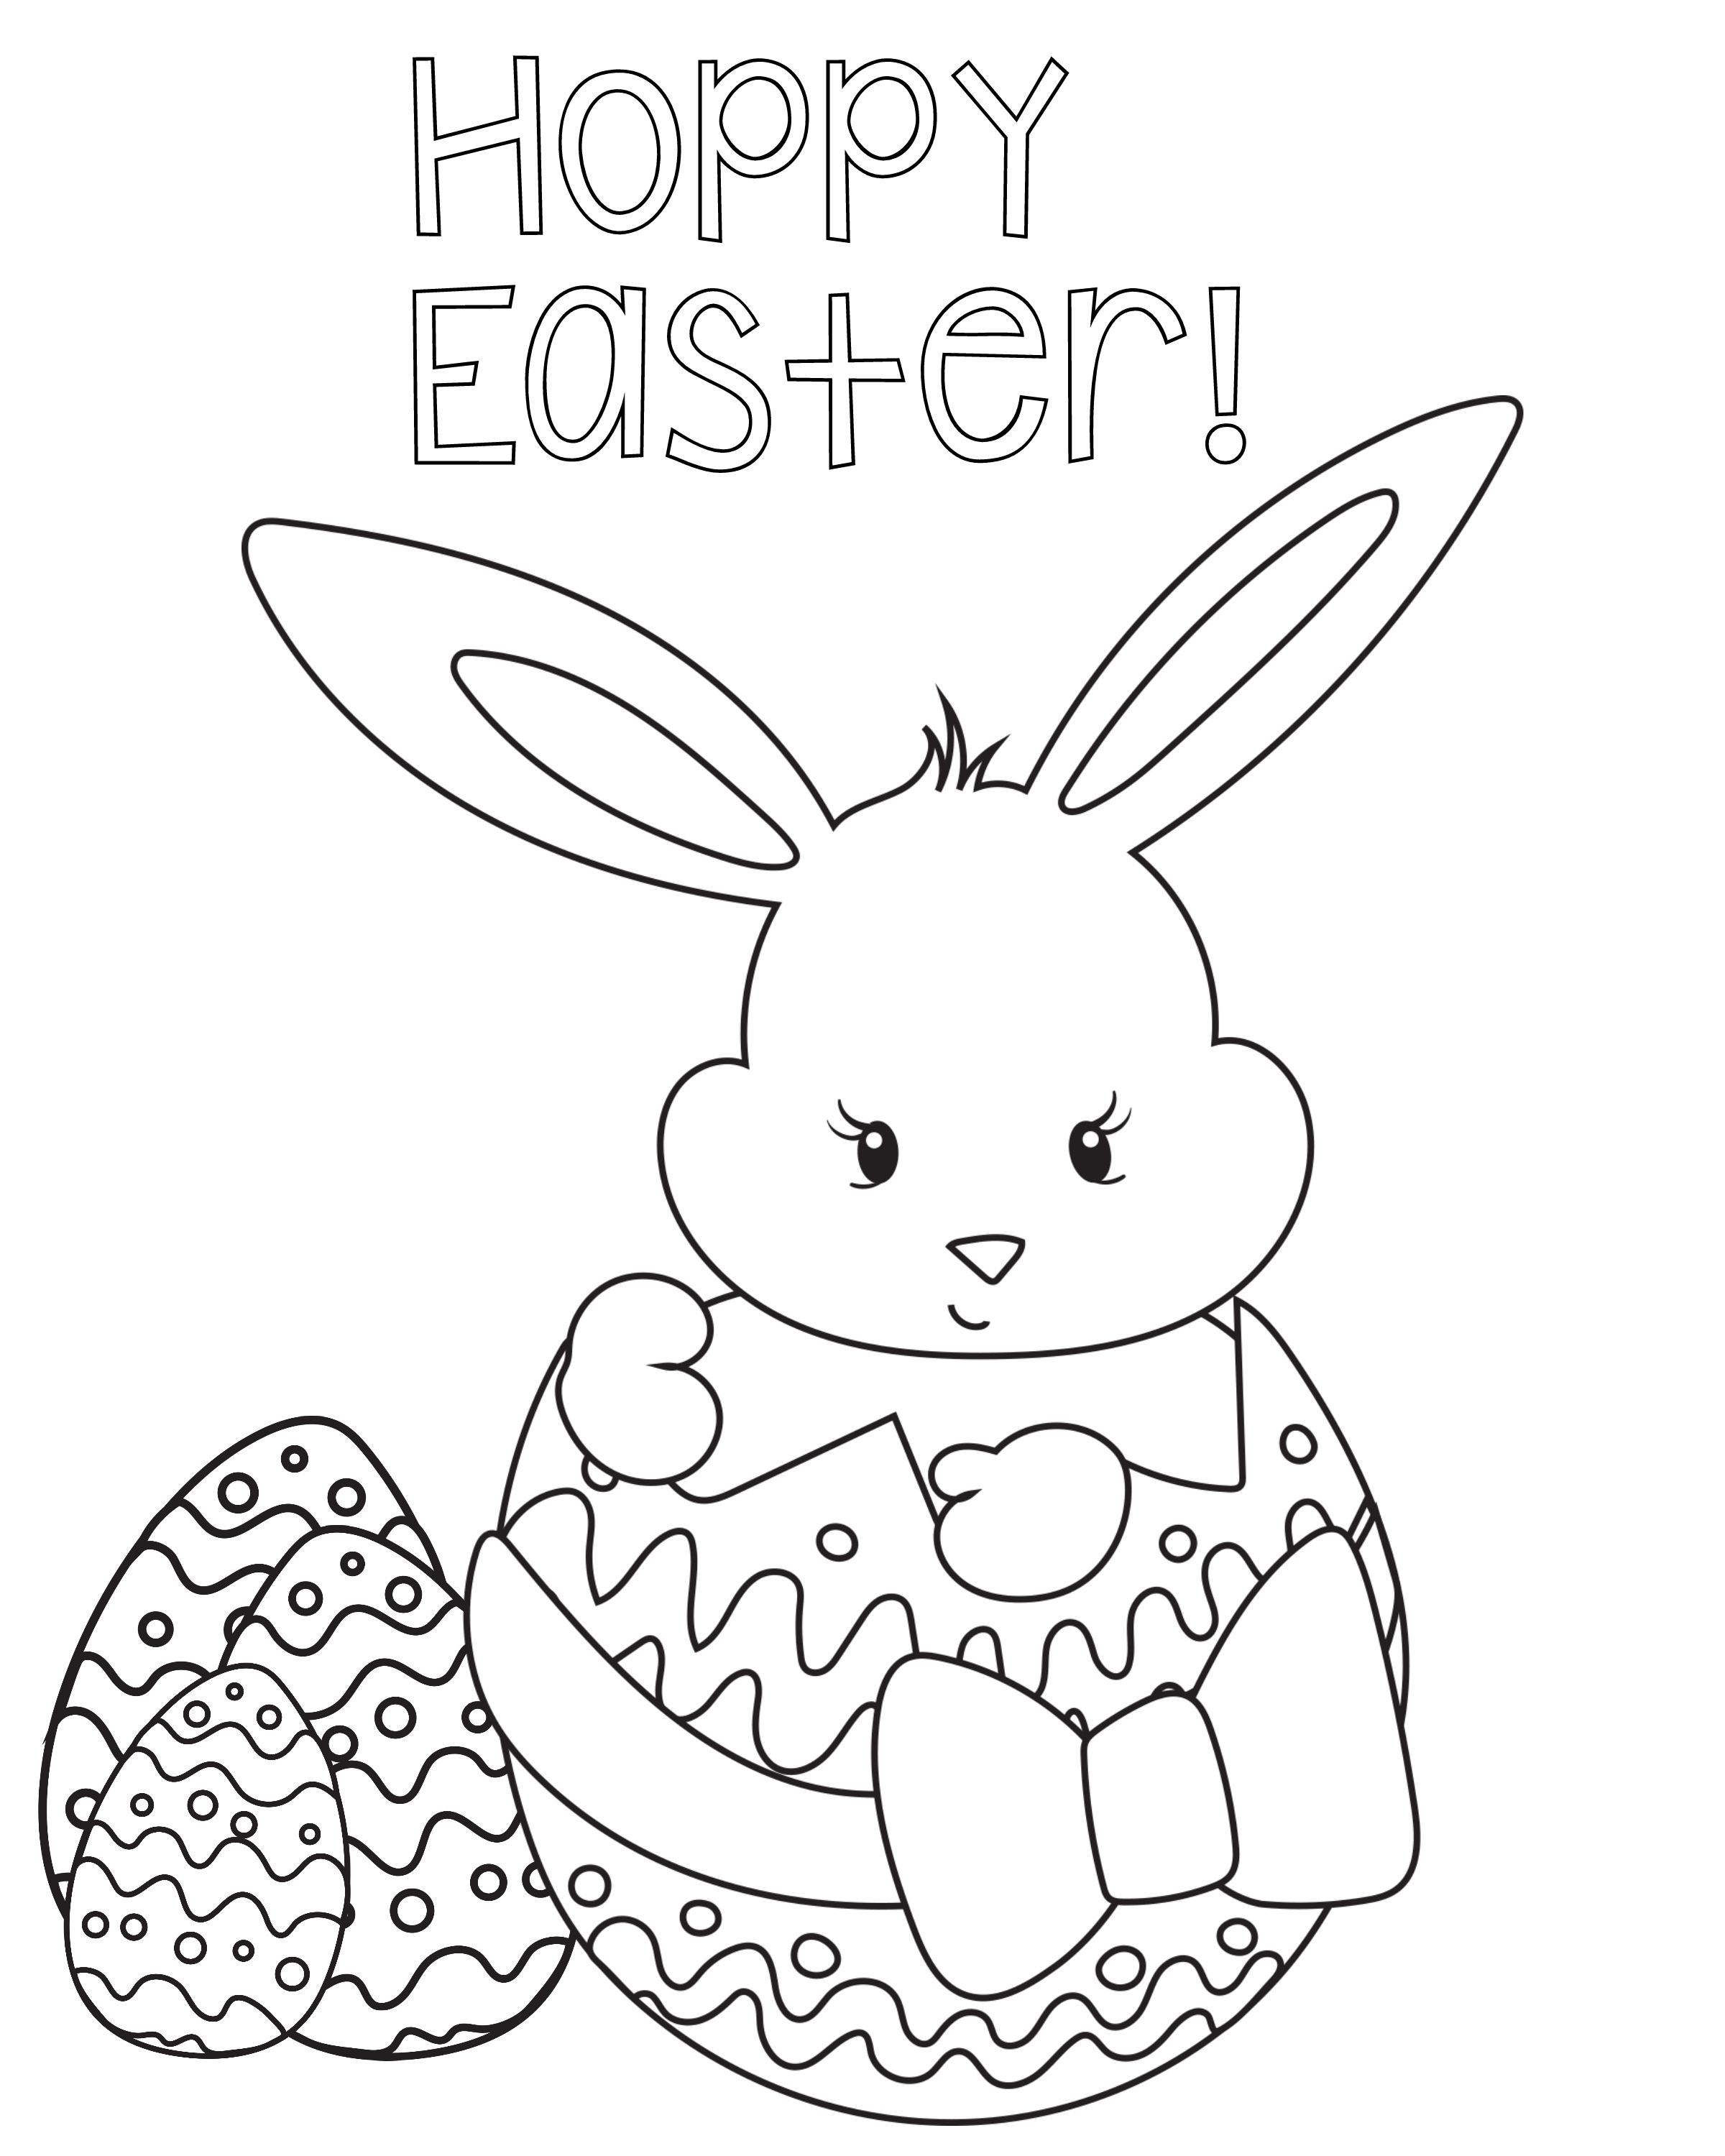 Printable Easter Coloring Pages Coloring Pages Download Rabbit - Free Printable Easter Coloring Pages